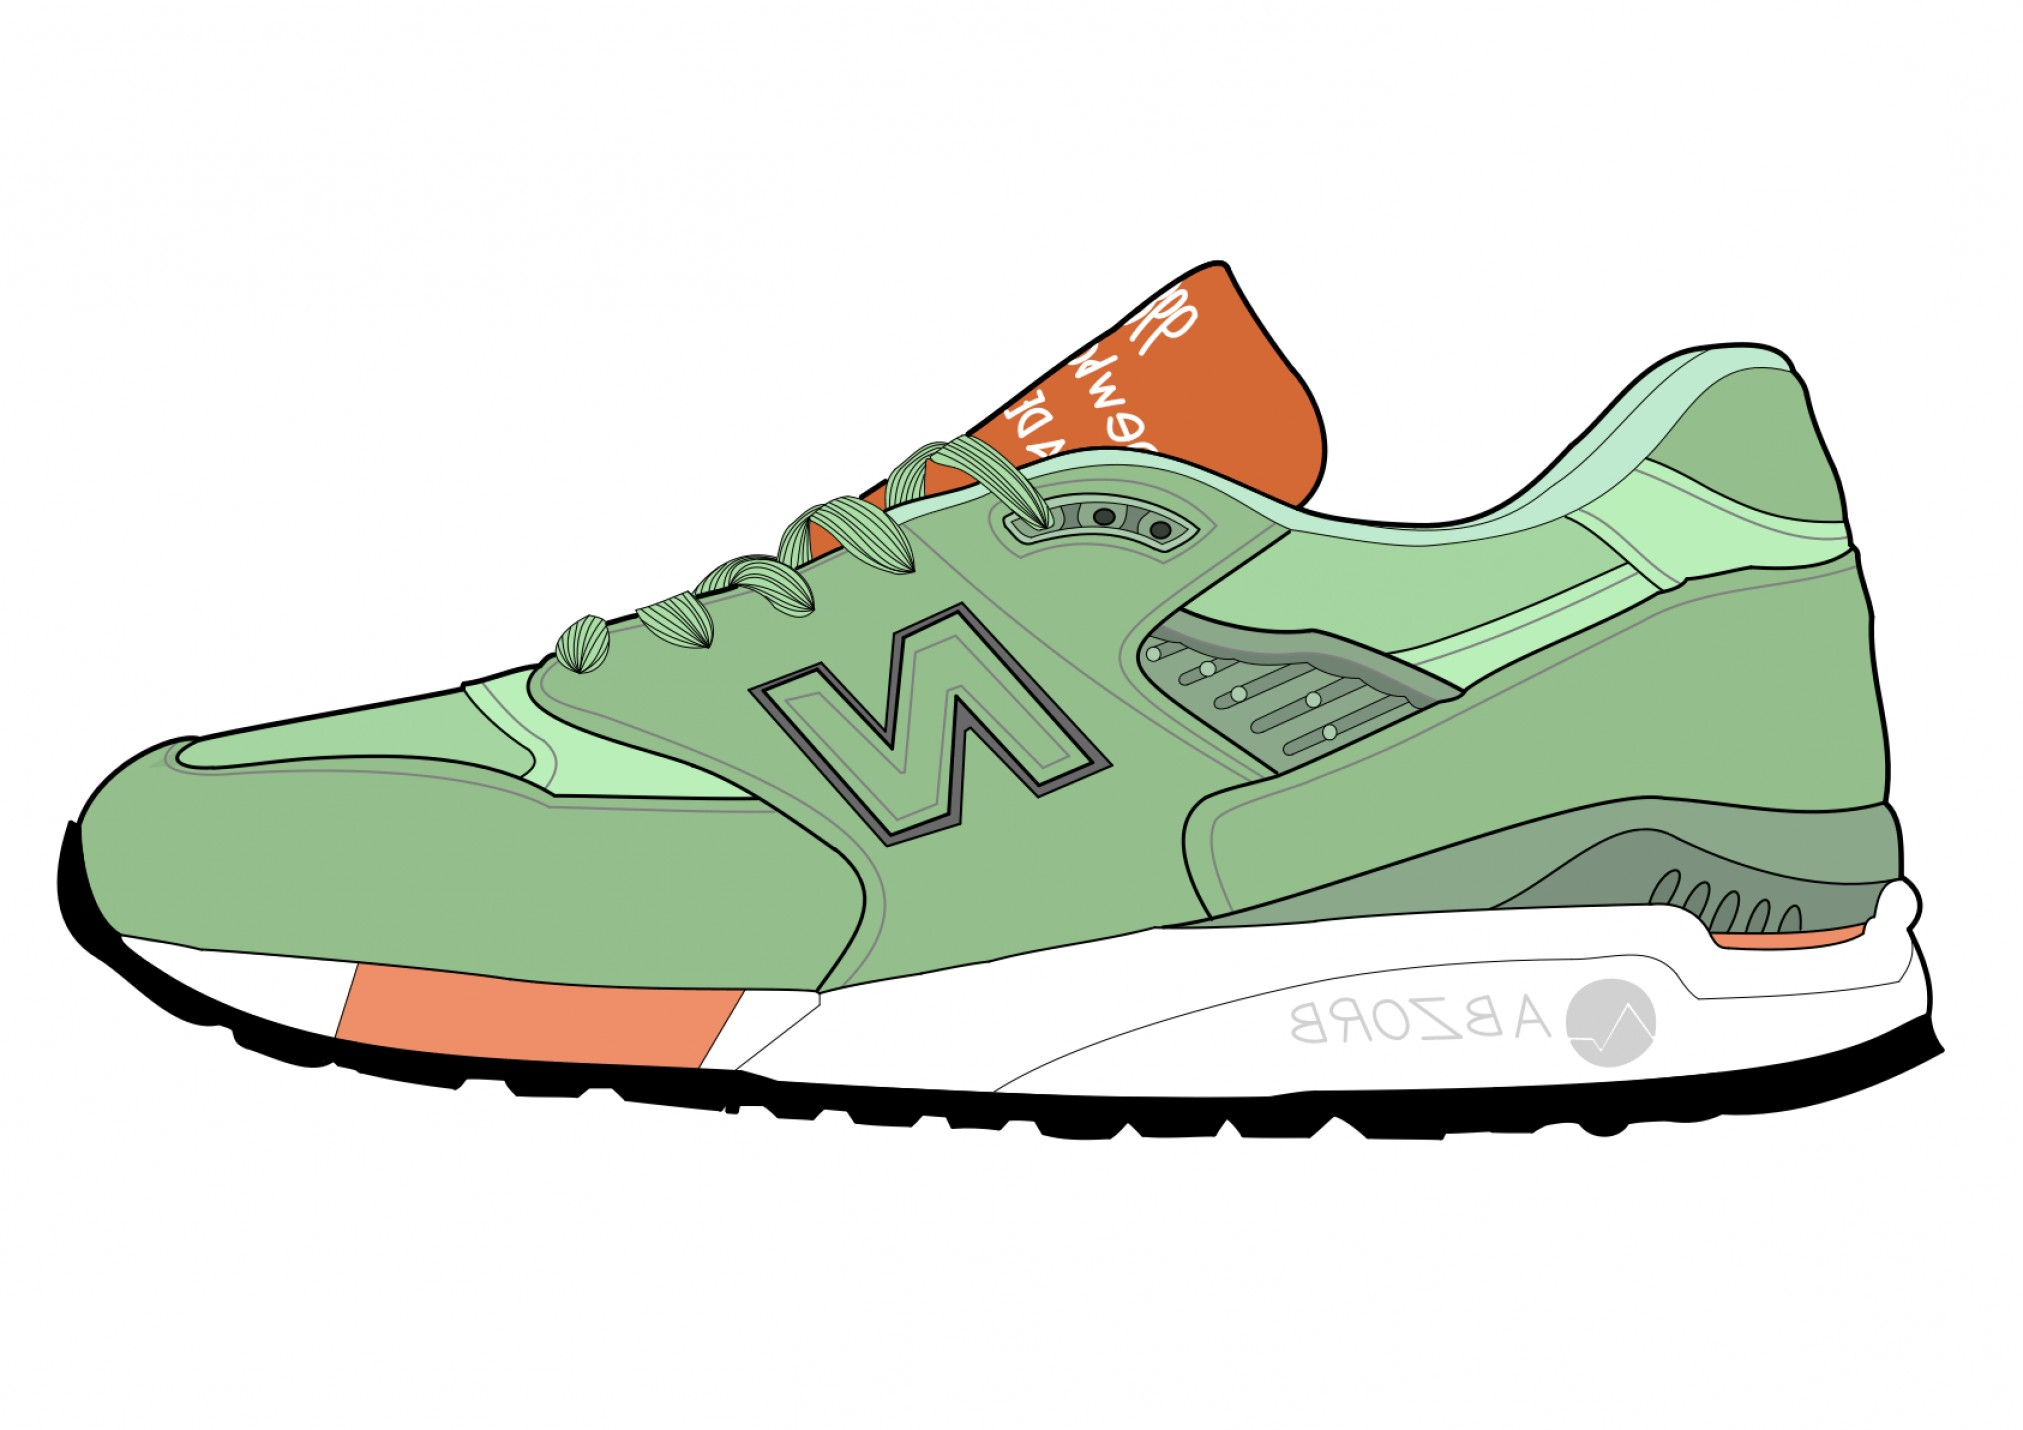 New Balance Vector: Zac Lynns Sneaker Design With Artboard